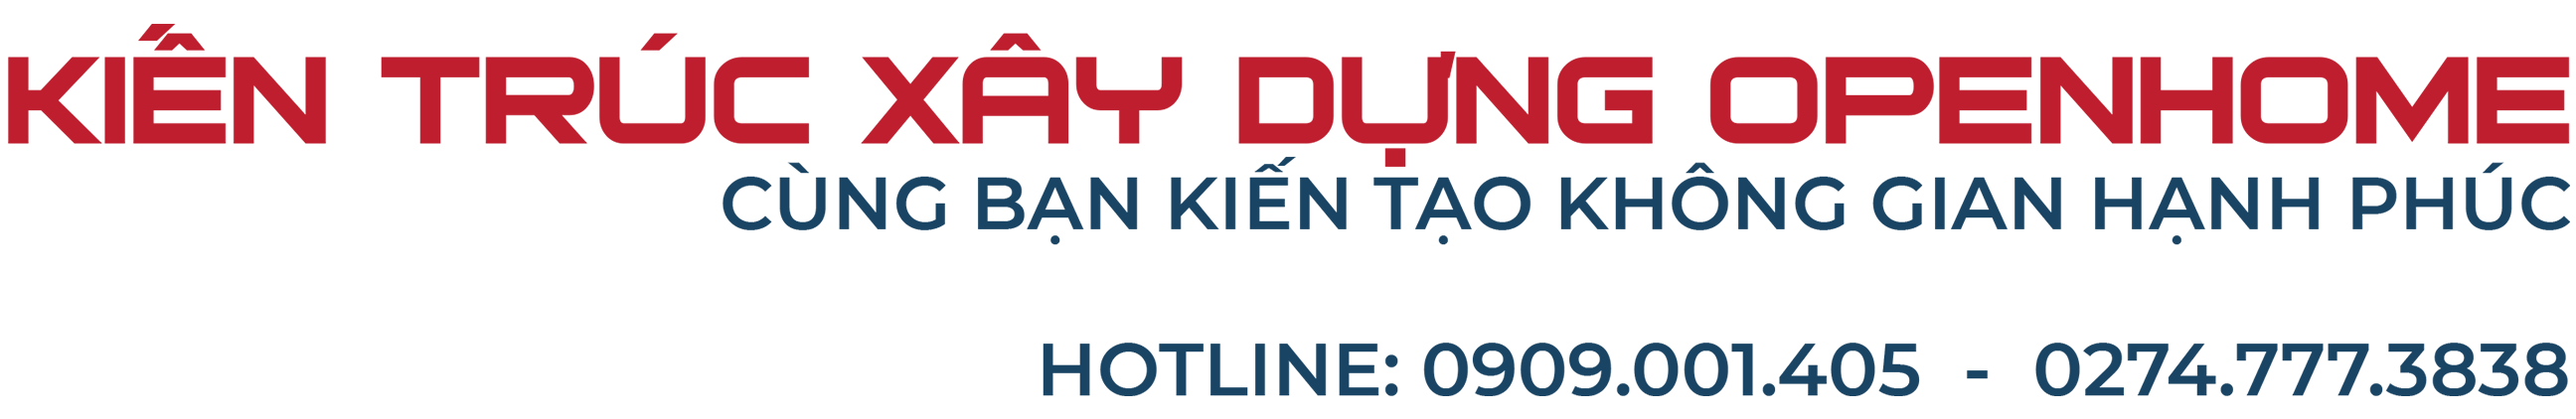 XÂY DỰNG OPENHOME